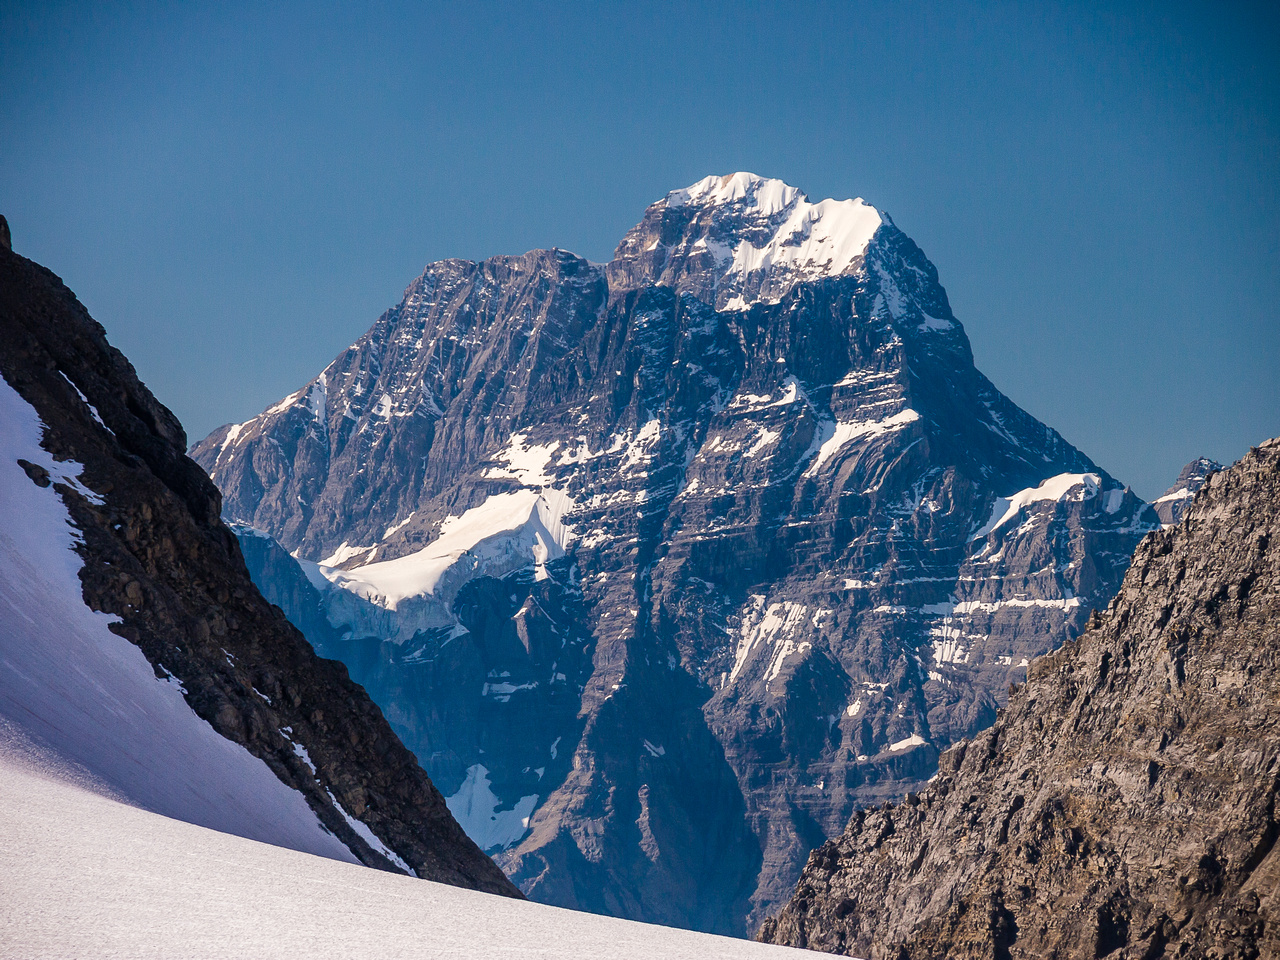 One of my favorite shots of the mighty Mount King George!